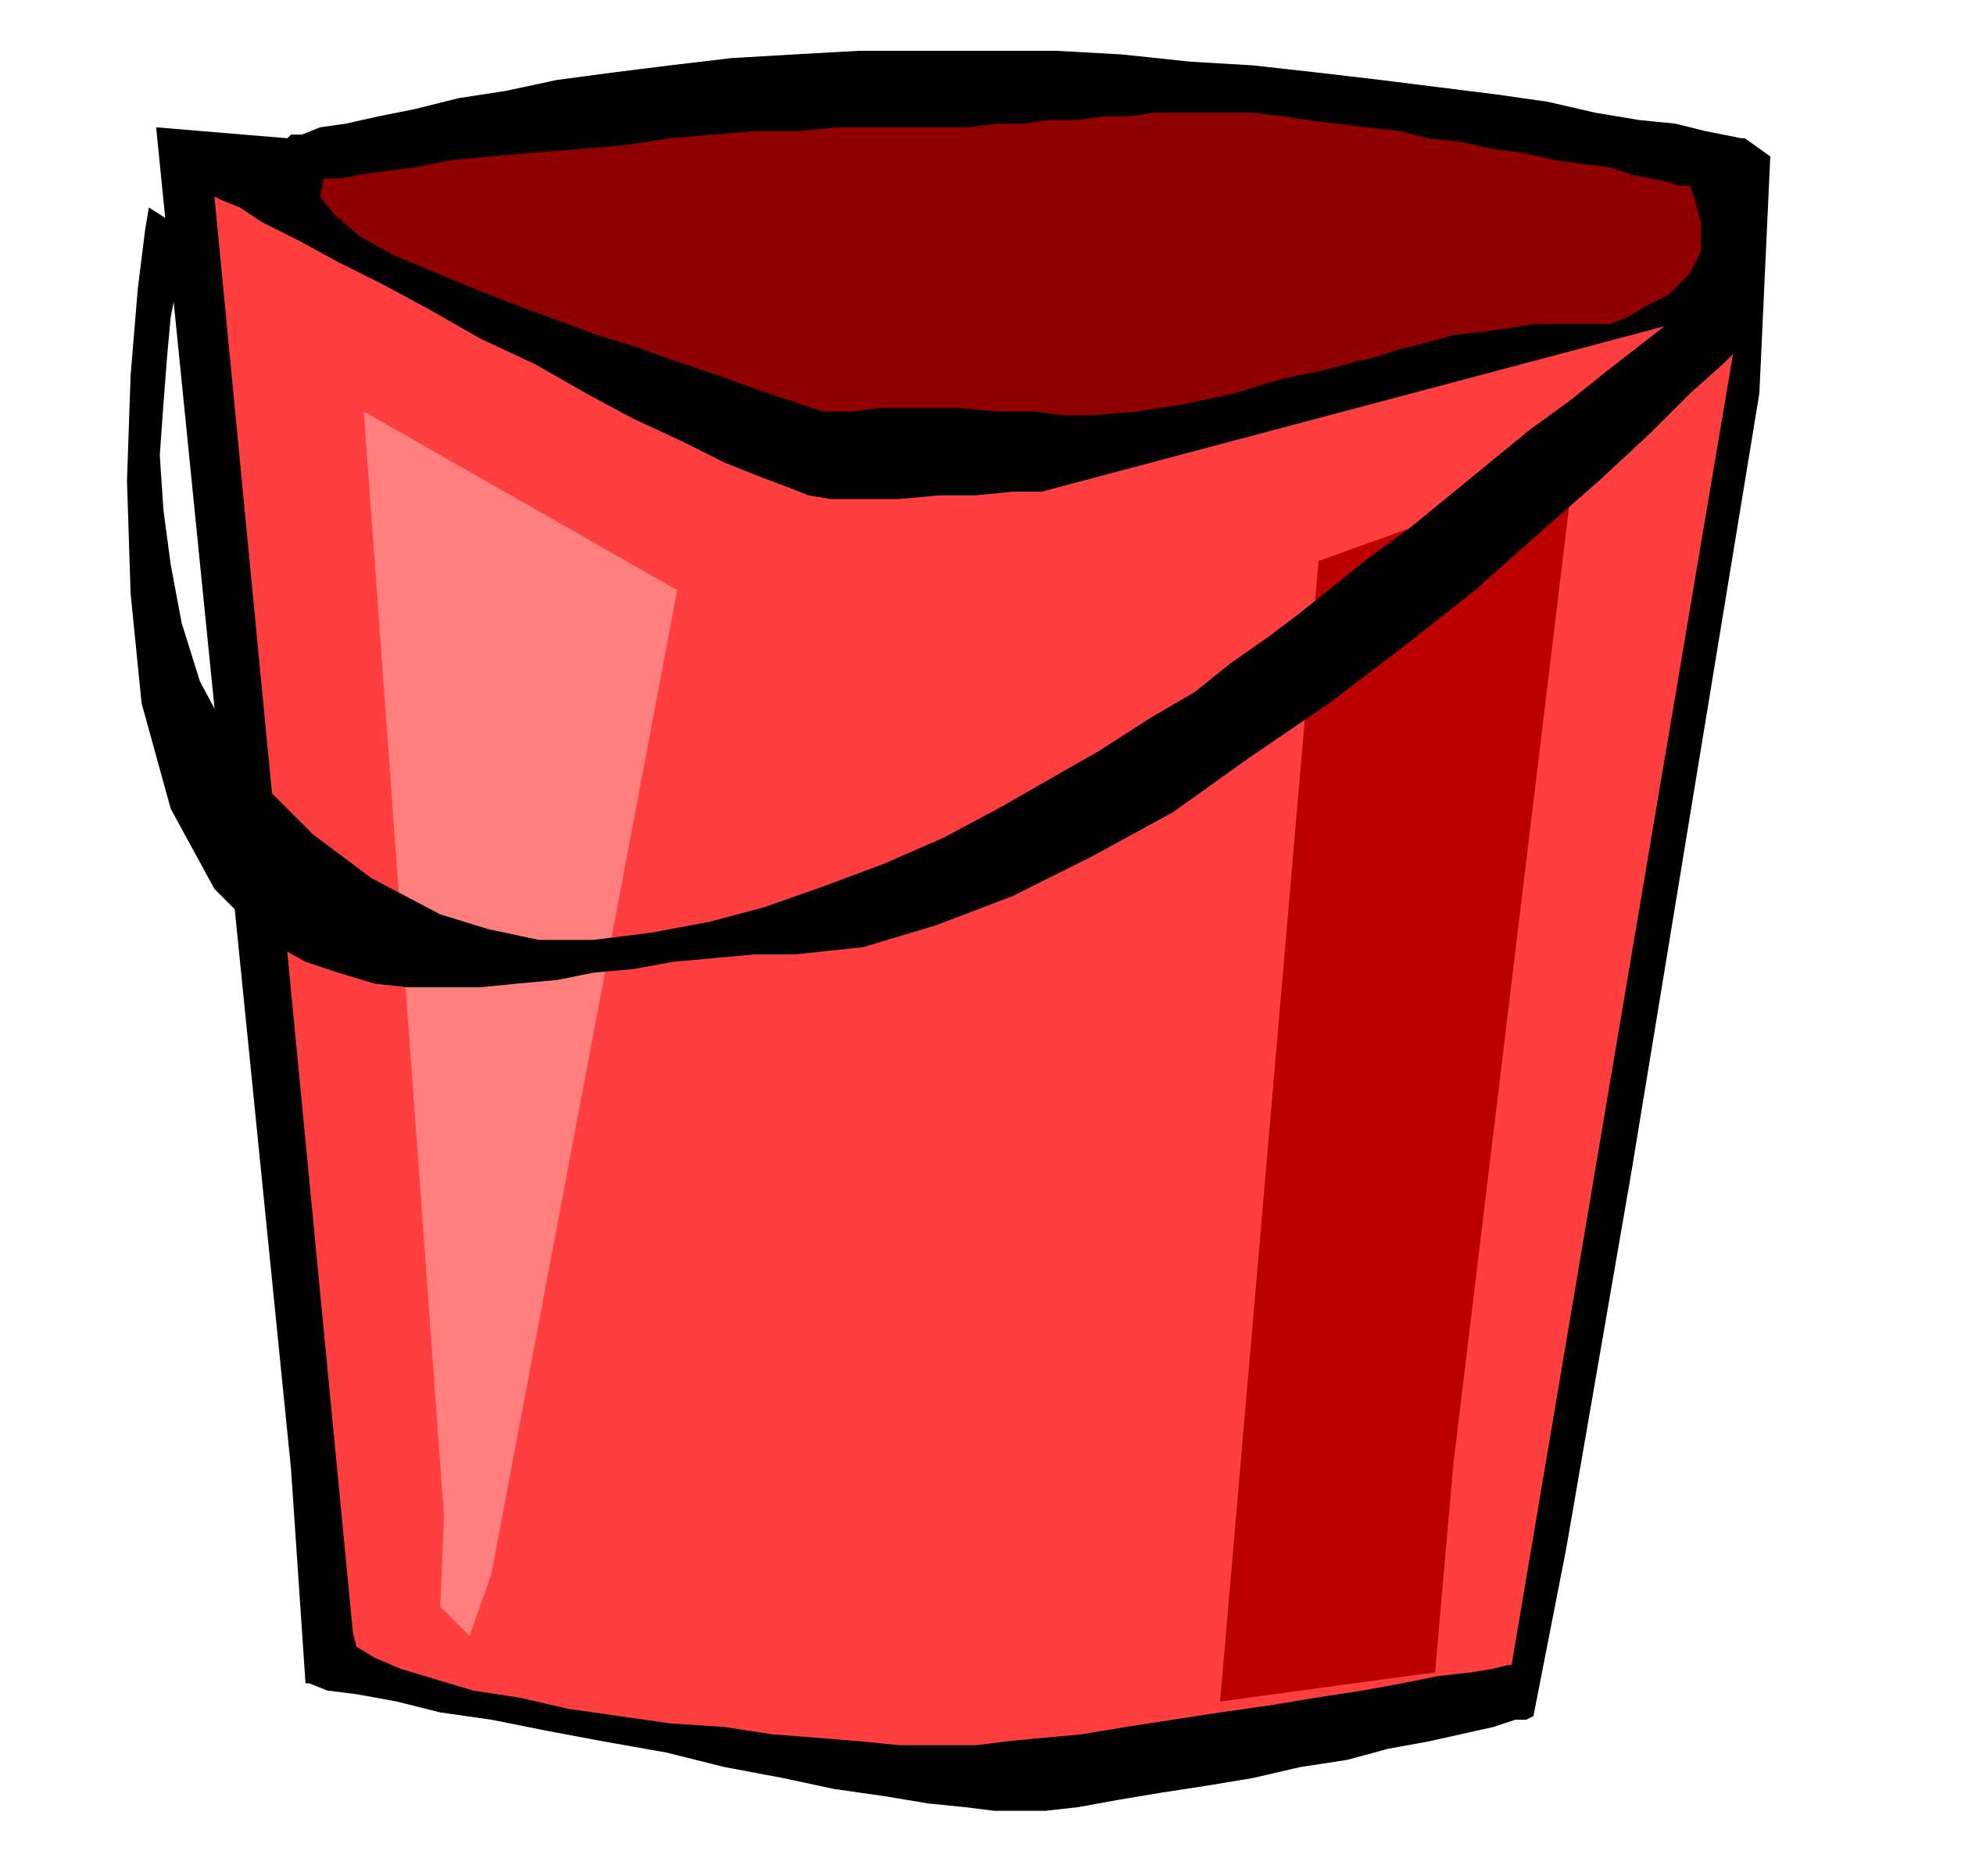 Red Bucket by ensarija